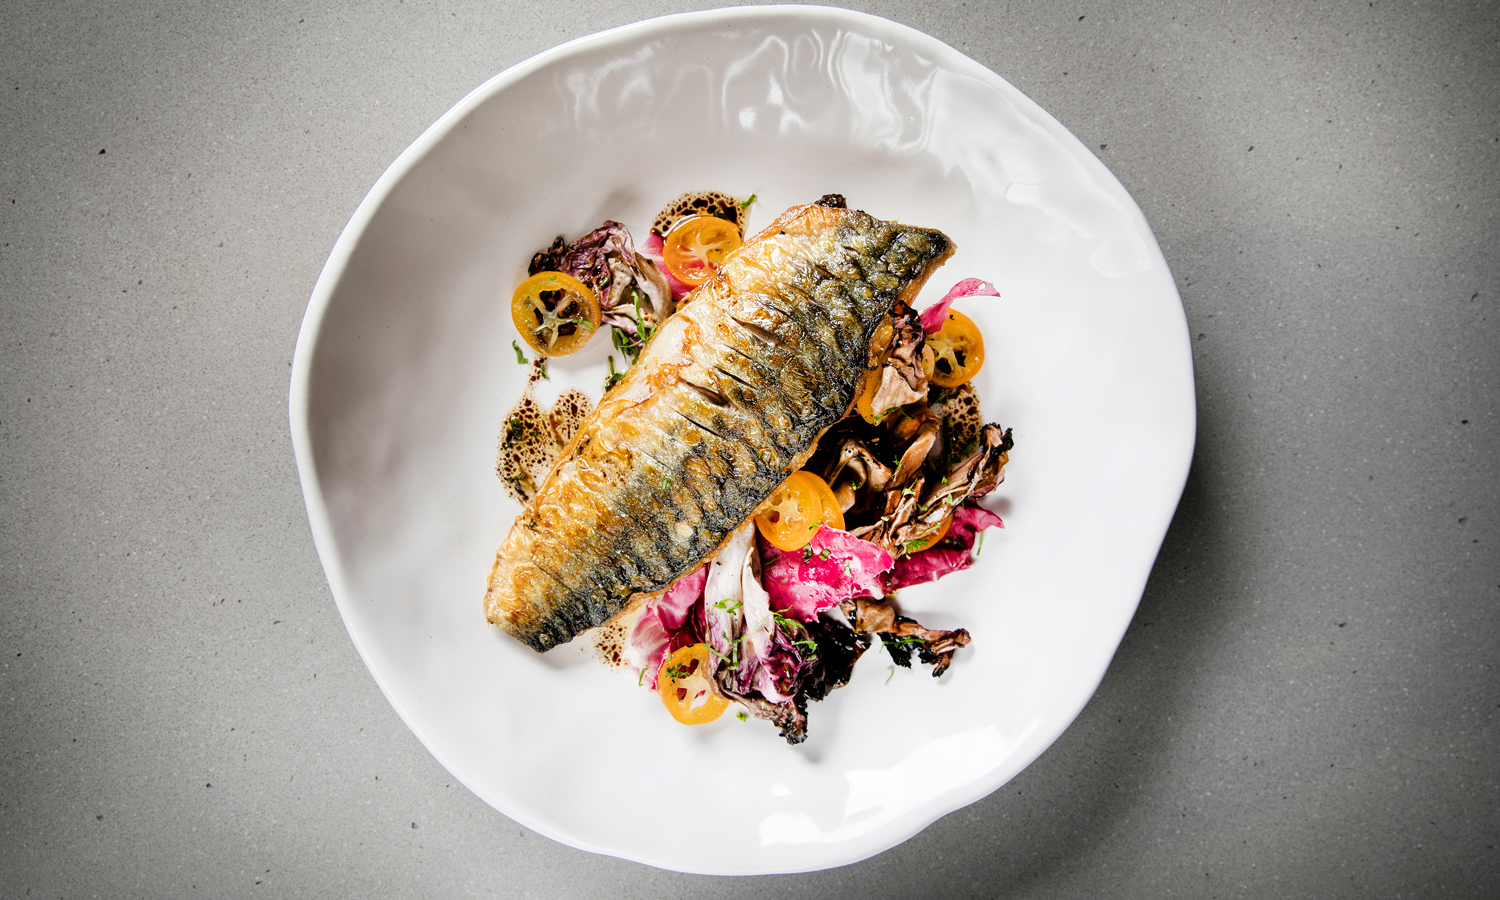 Restaurant of the week: Hicce